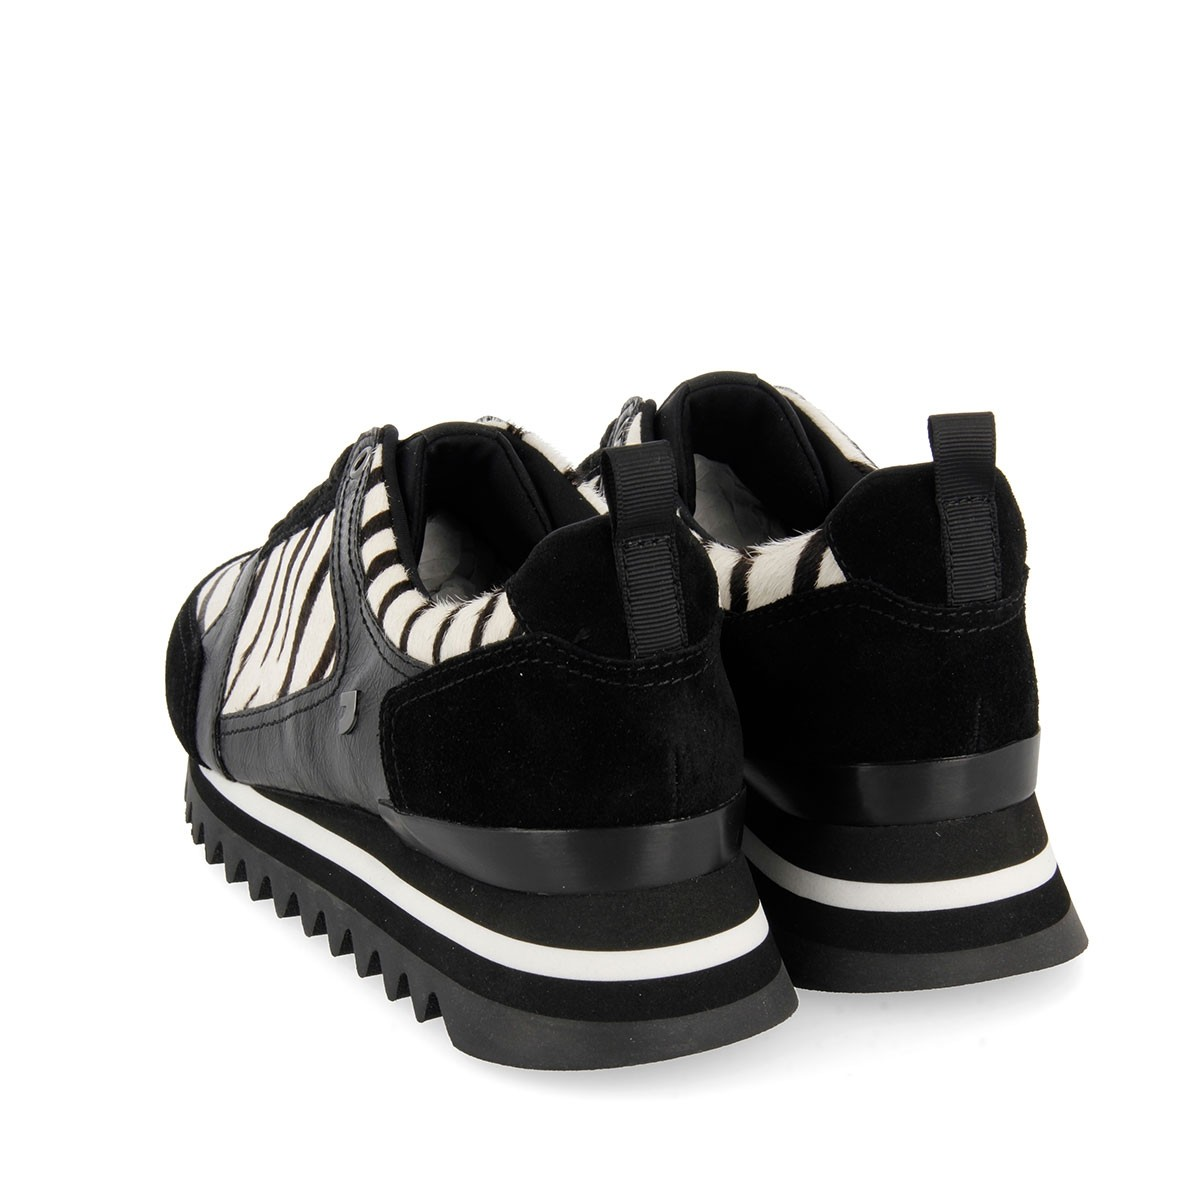 56709 Off-White CASUAL-SPORT 4